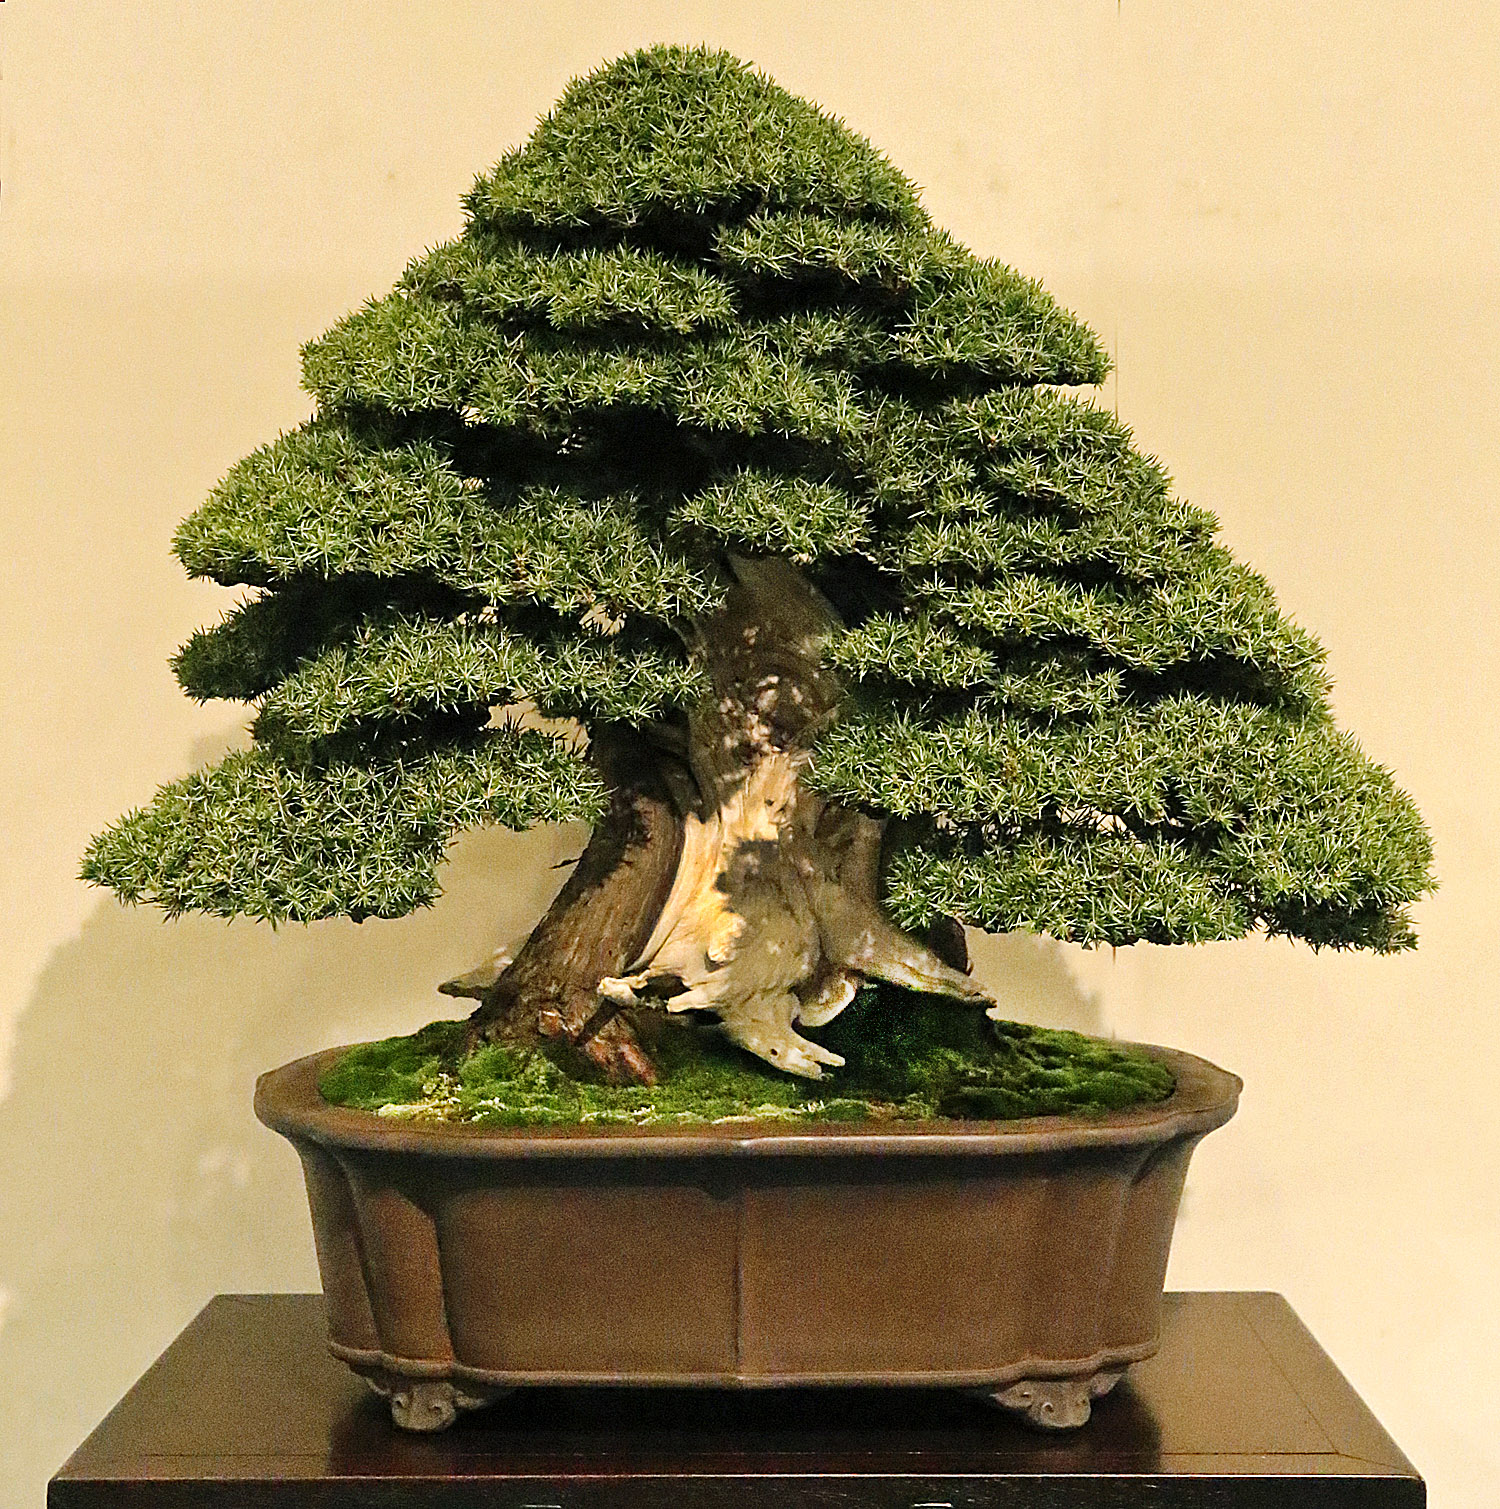 Negozio bonsai semi di ginepro ad aghi juniperus rigida for Bonsai costo